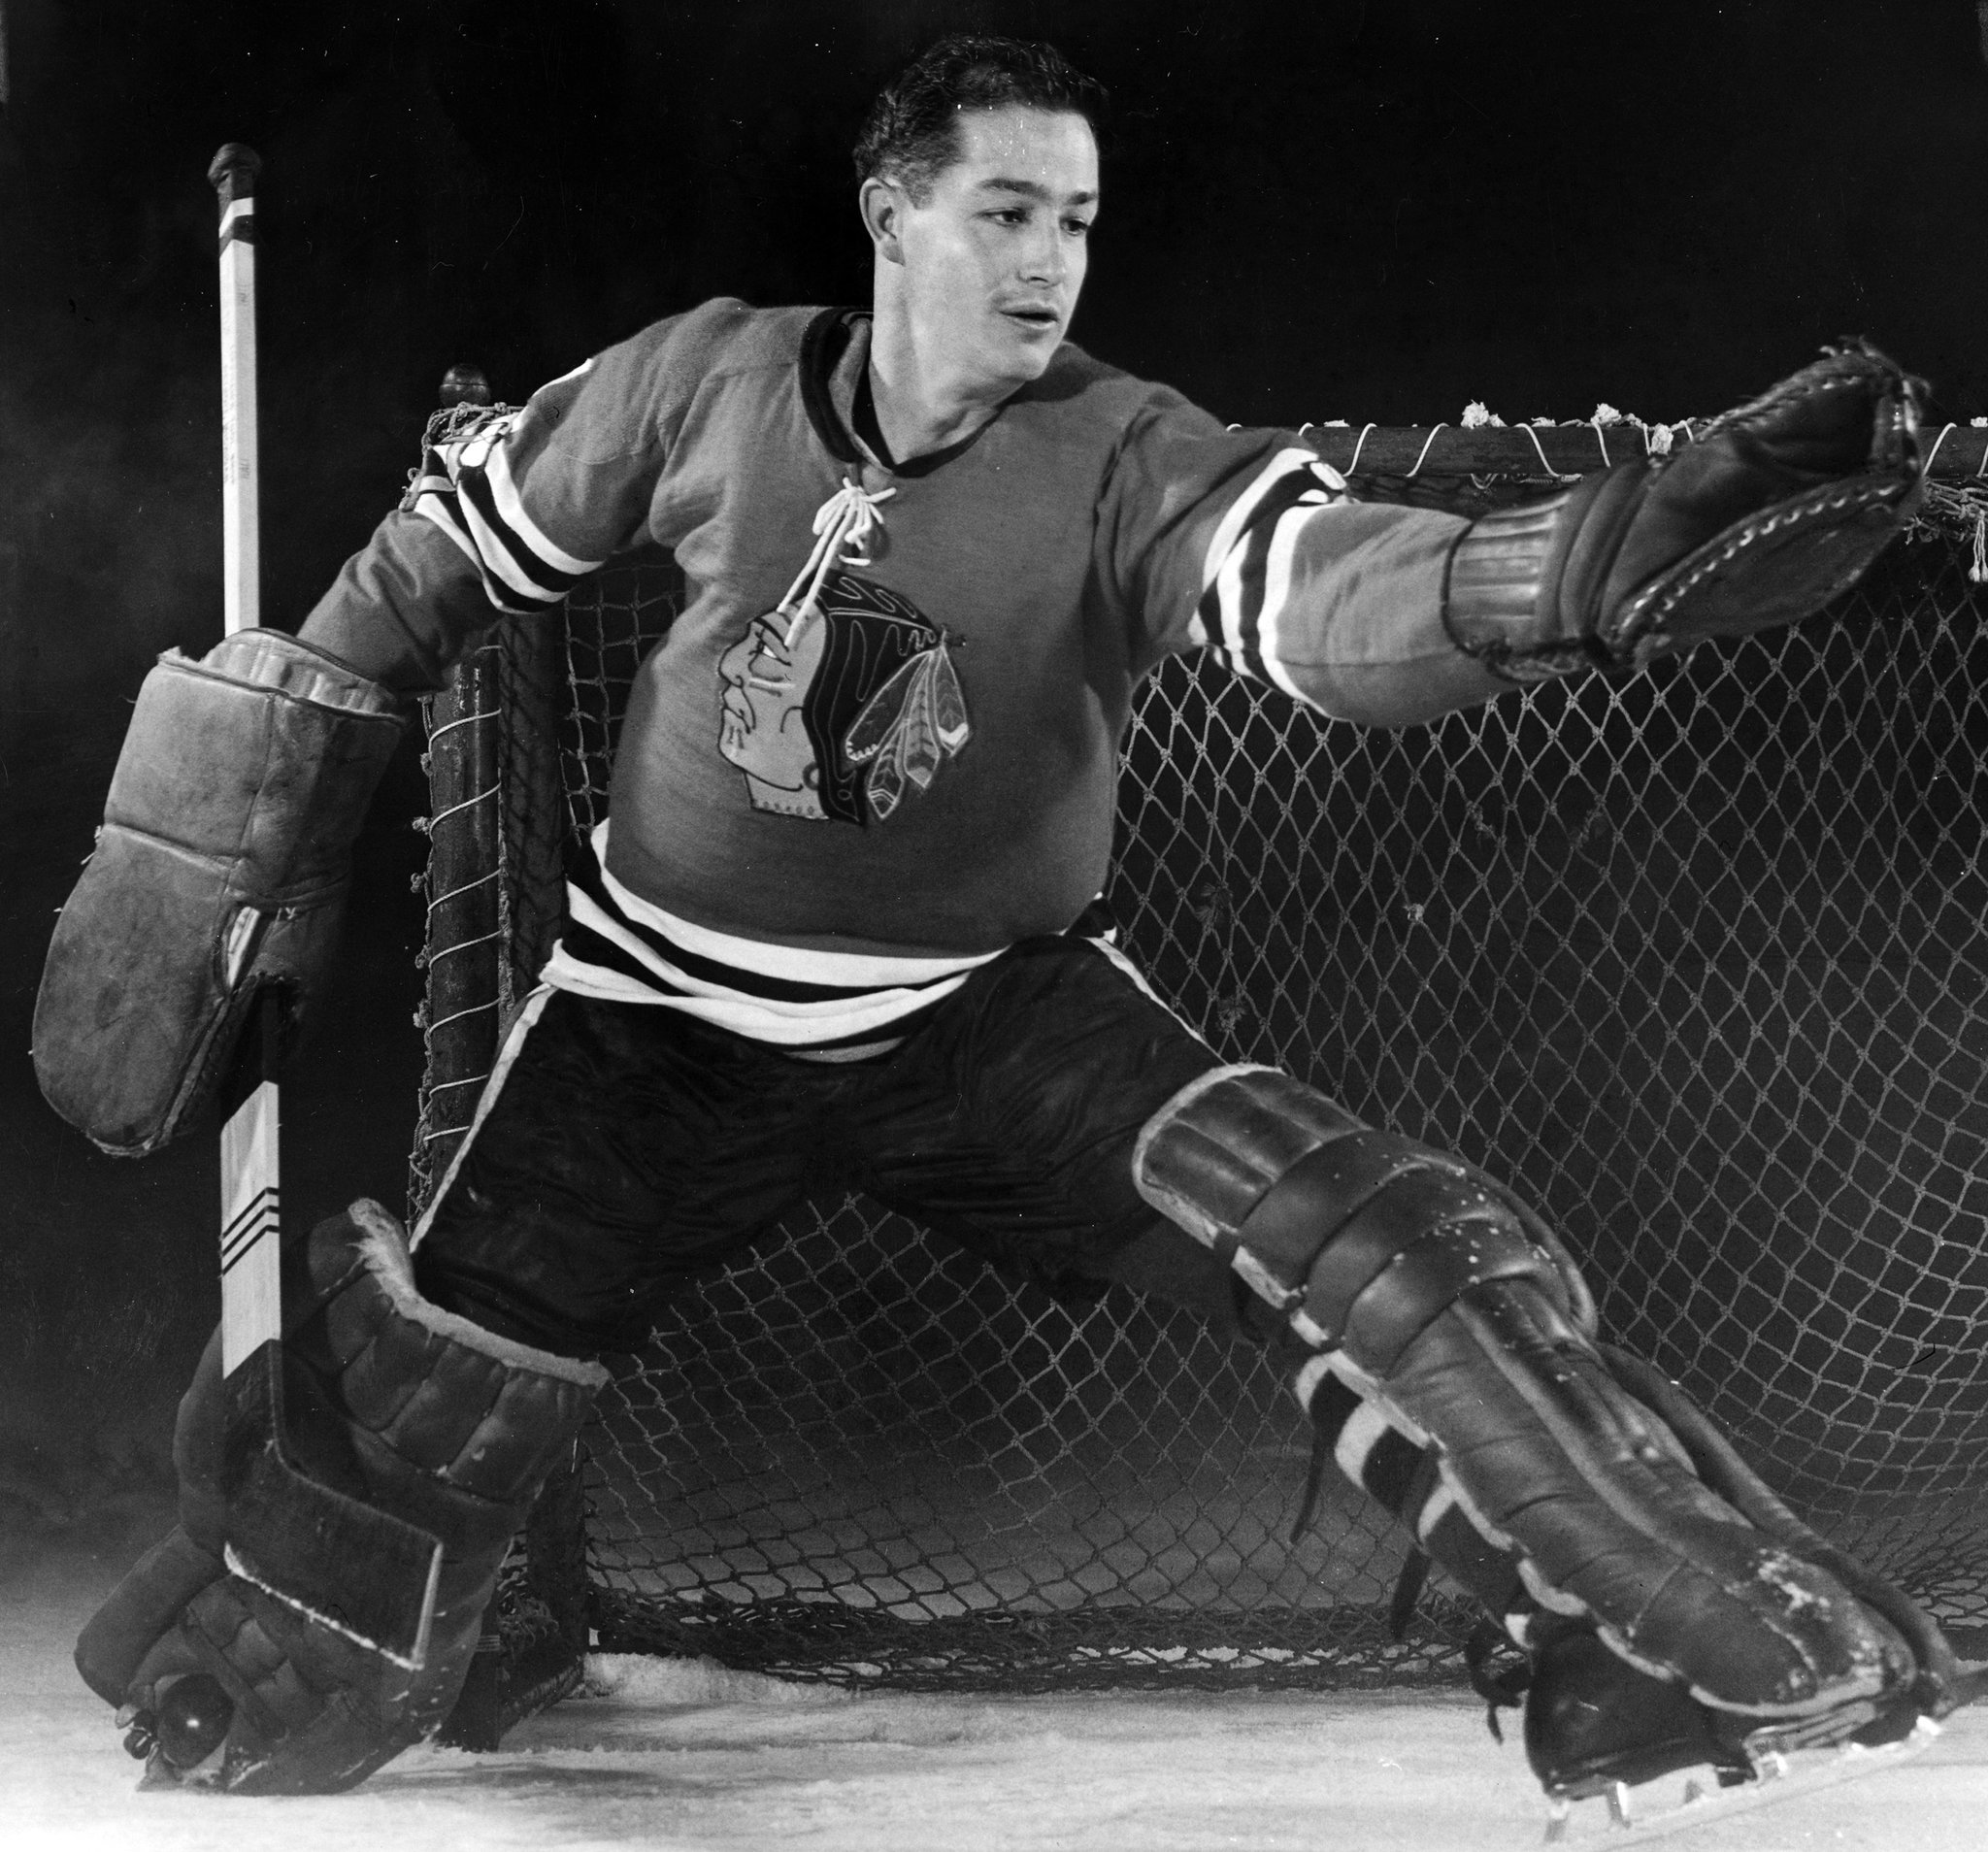 dcd58817a NHL names 10 Blackhawks among its top 100 players of all time - Chicago  Tribune